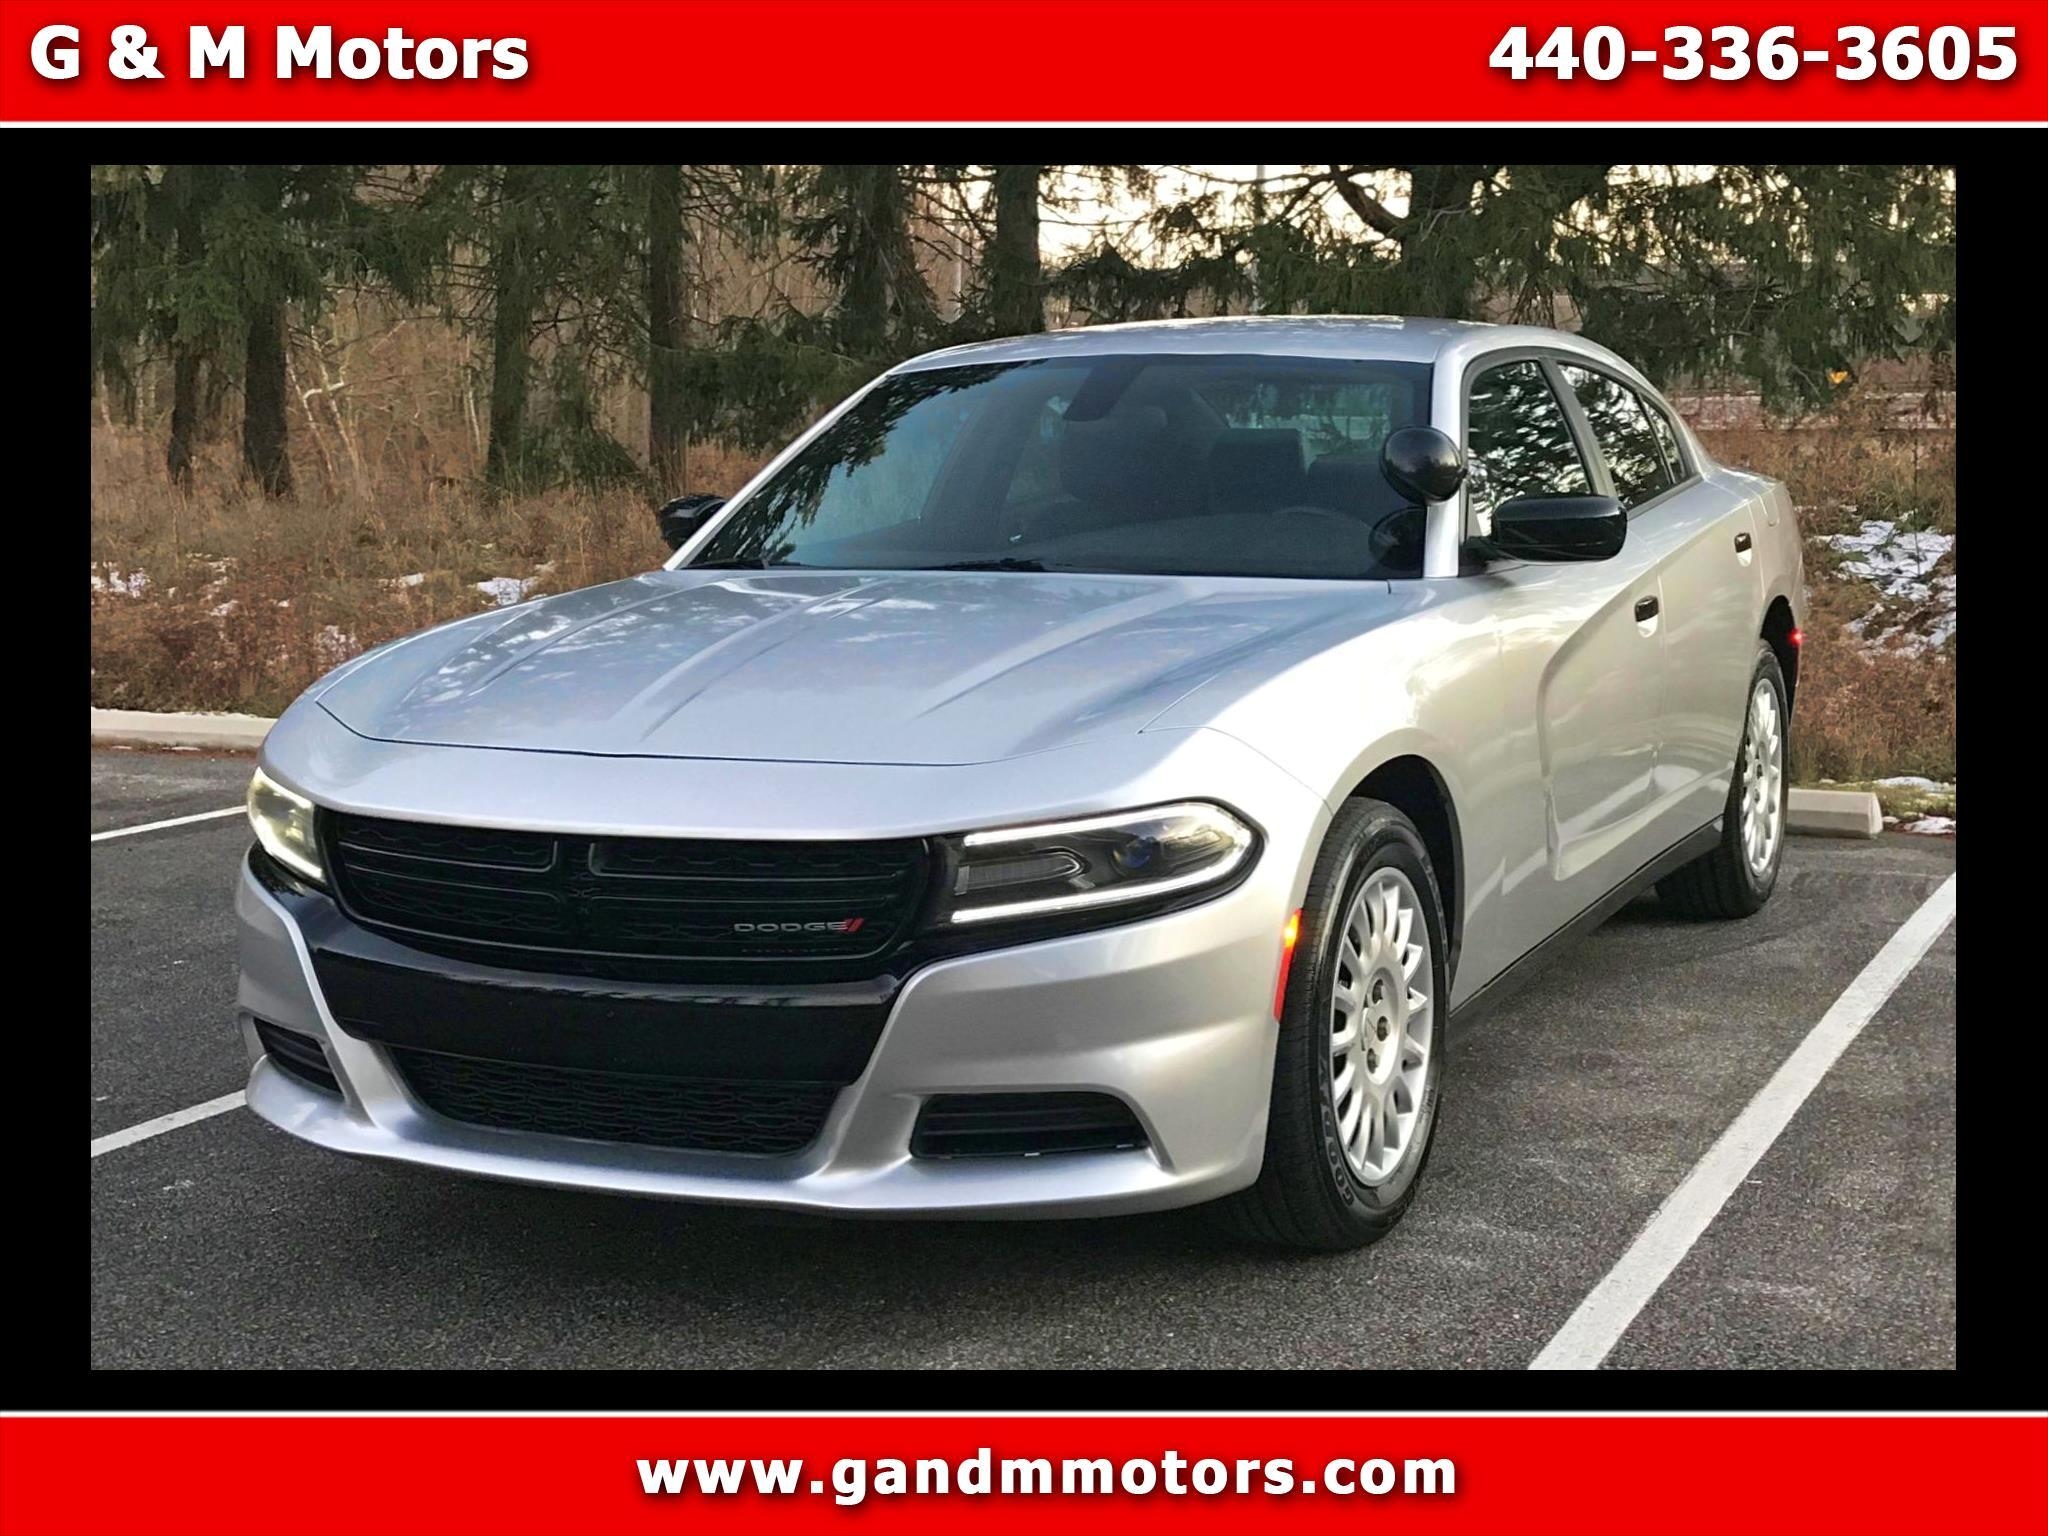 Dodge Charger Police AWD 2017